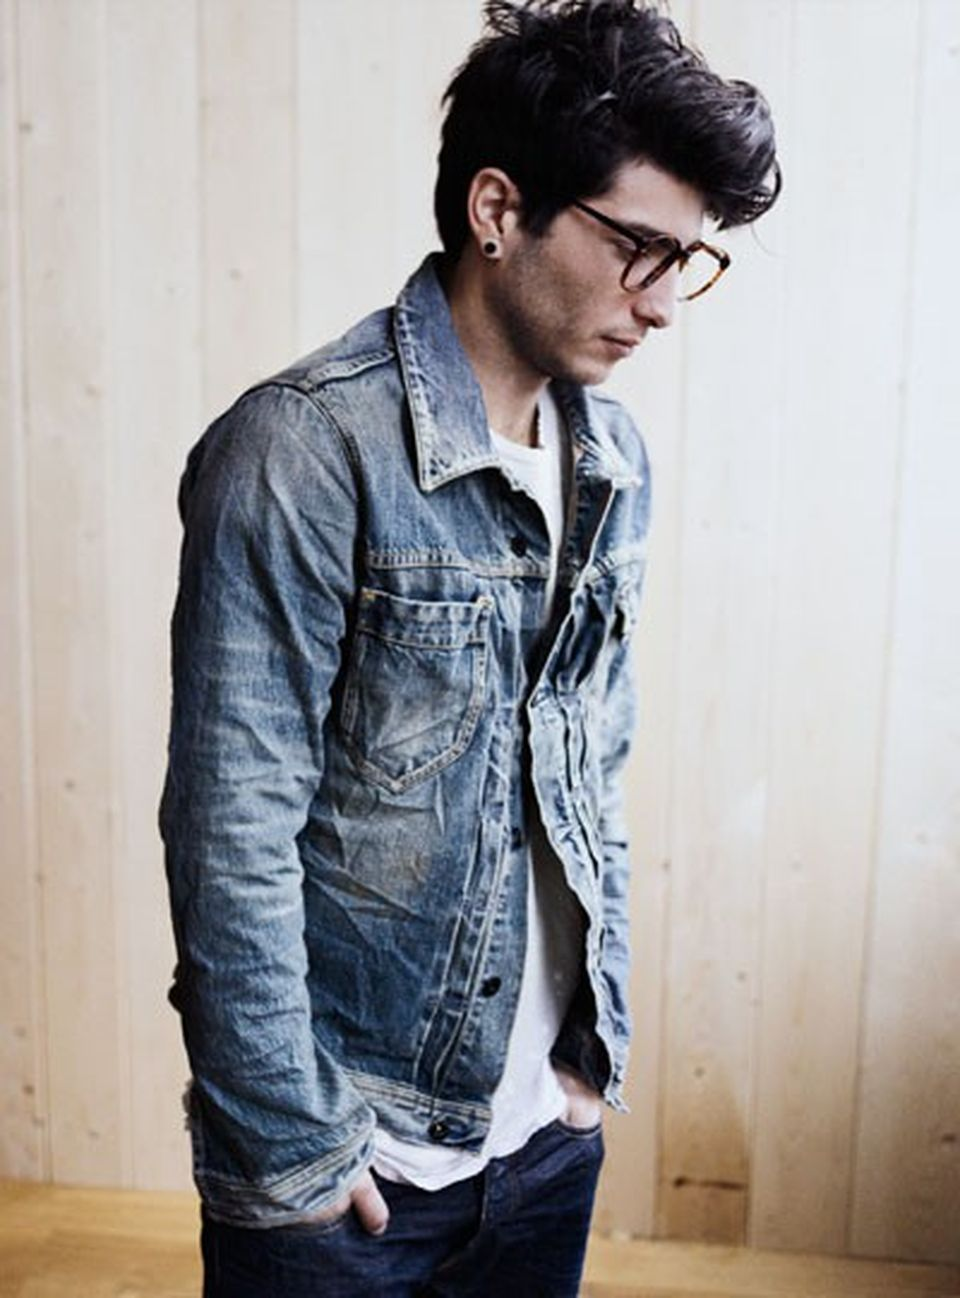 Casual Indie Mens Fashion Outfits Style 8: Casual Indie Mens Fashion Outfits Style 19